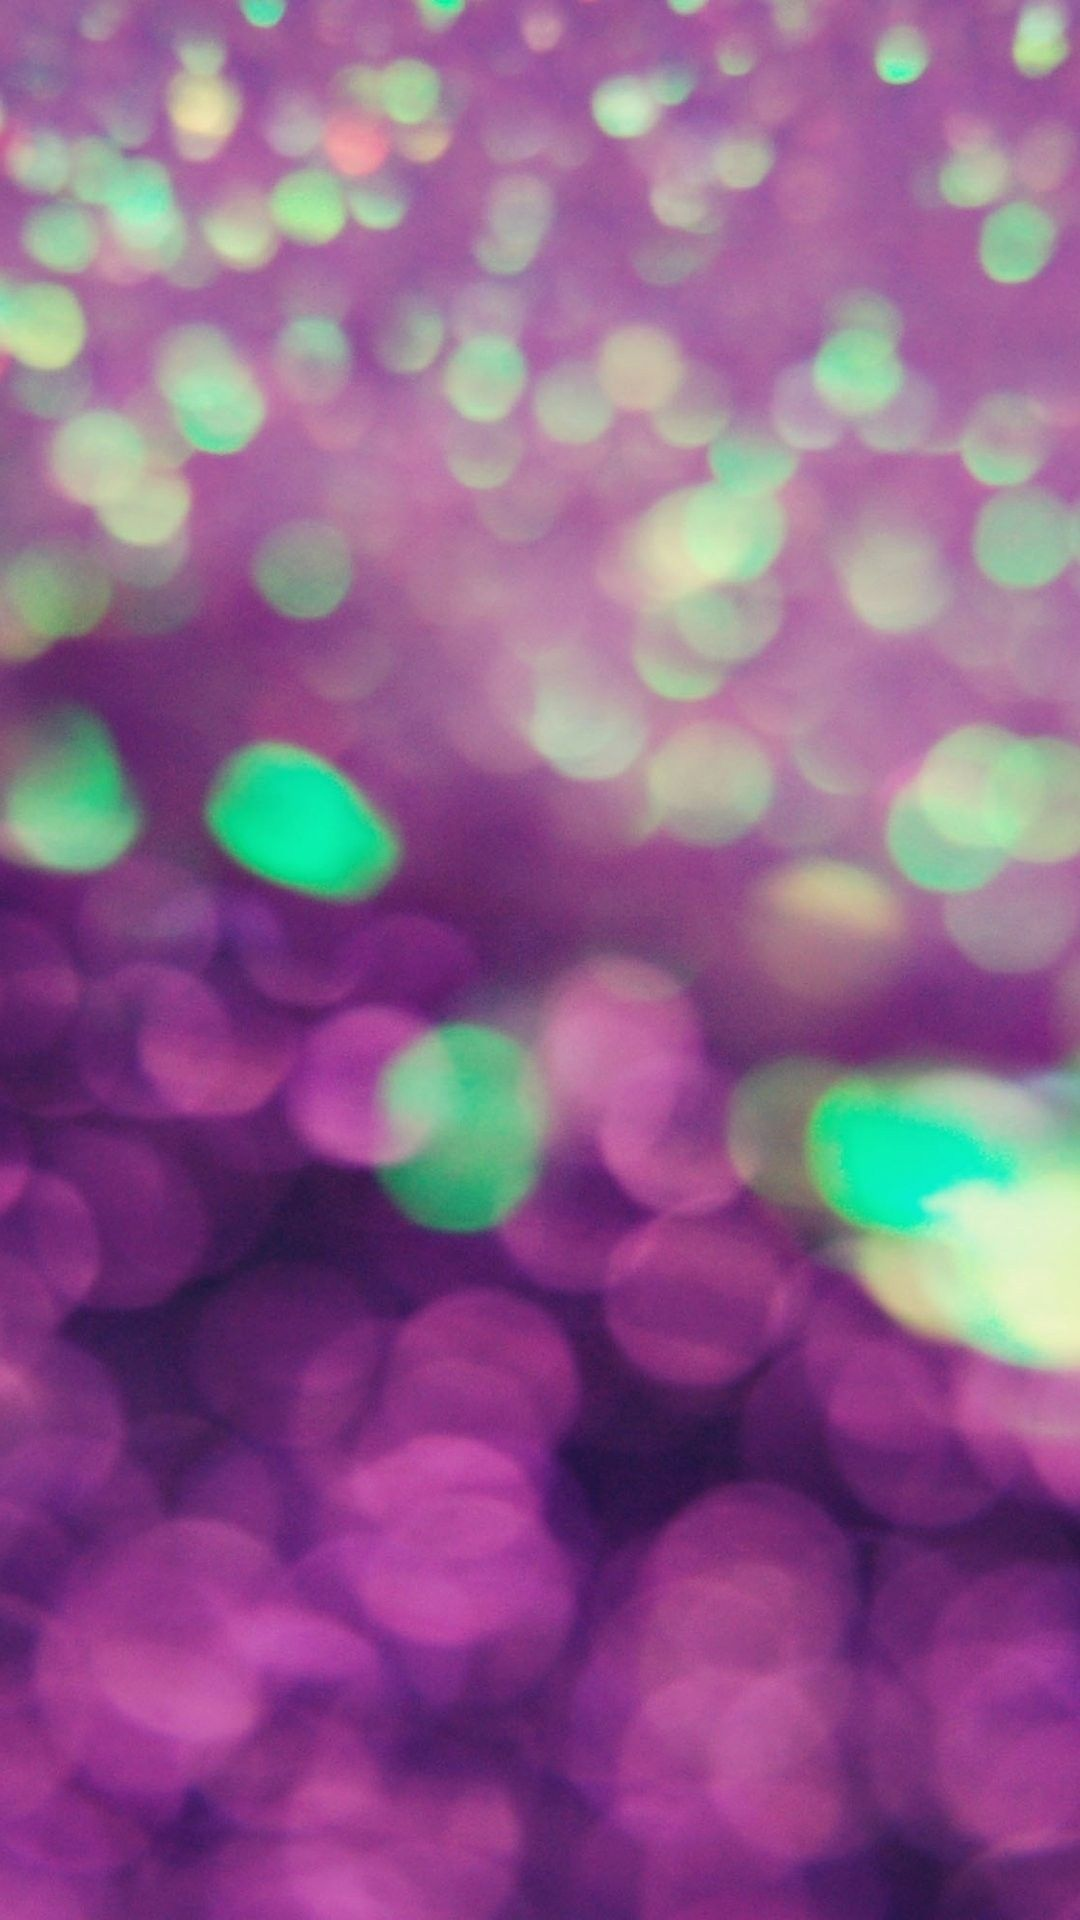 Glitter iPhone 6 Plus Wallpaper 9009 Other iPhone 6 Plus